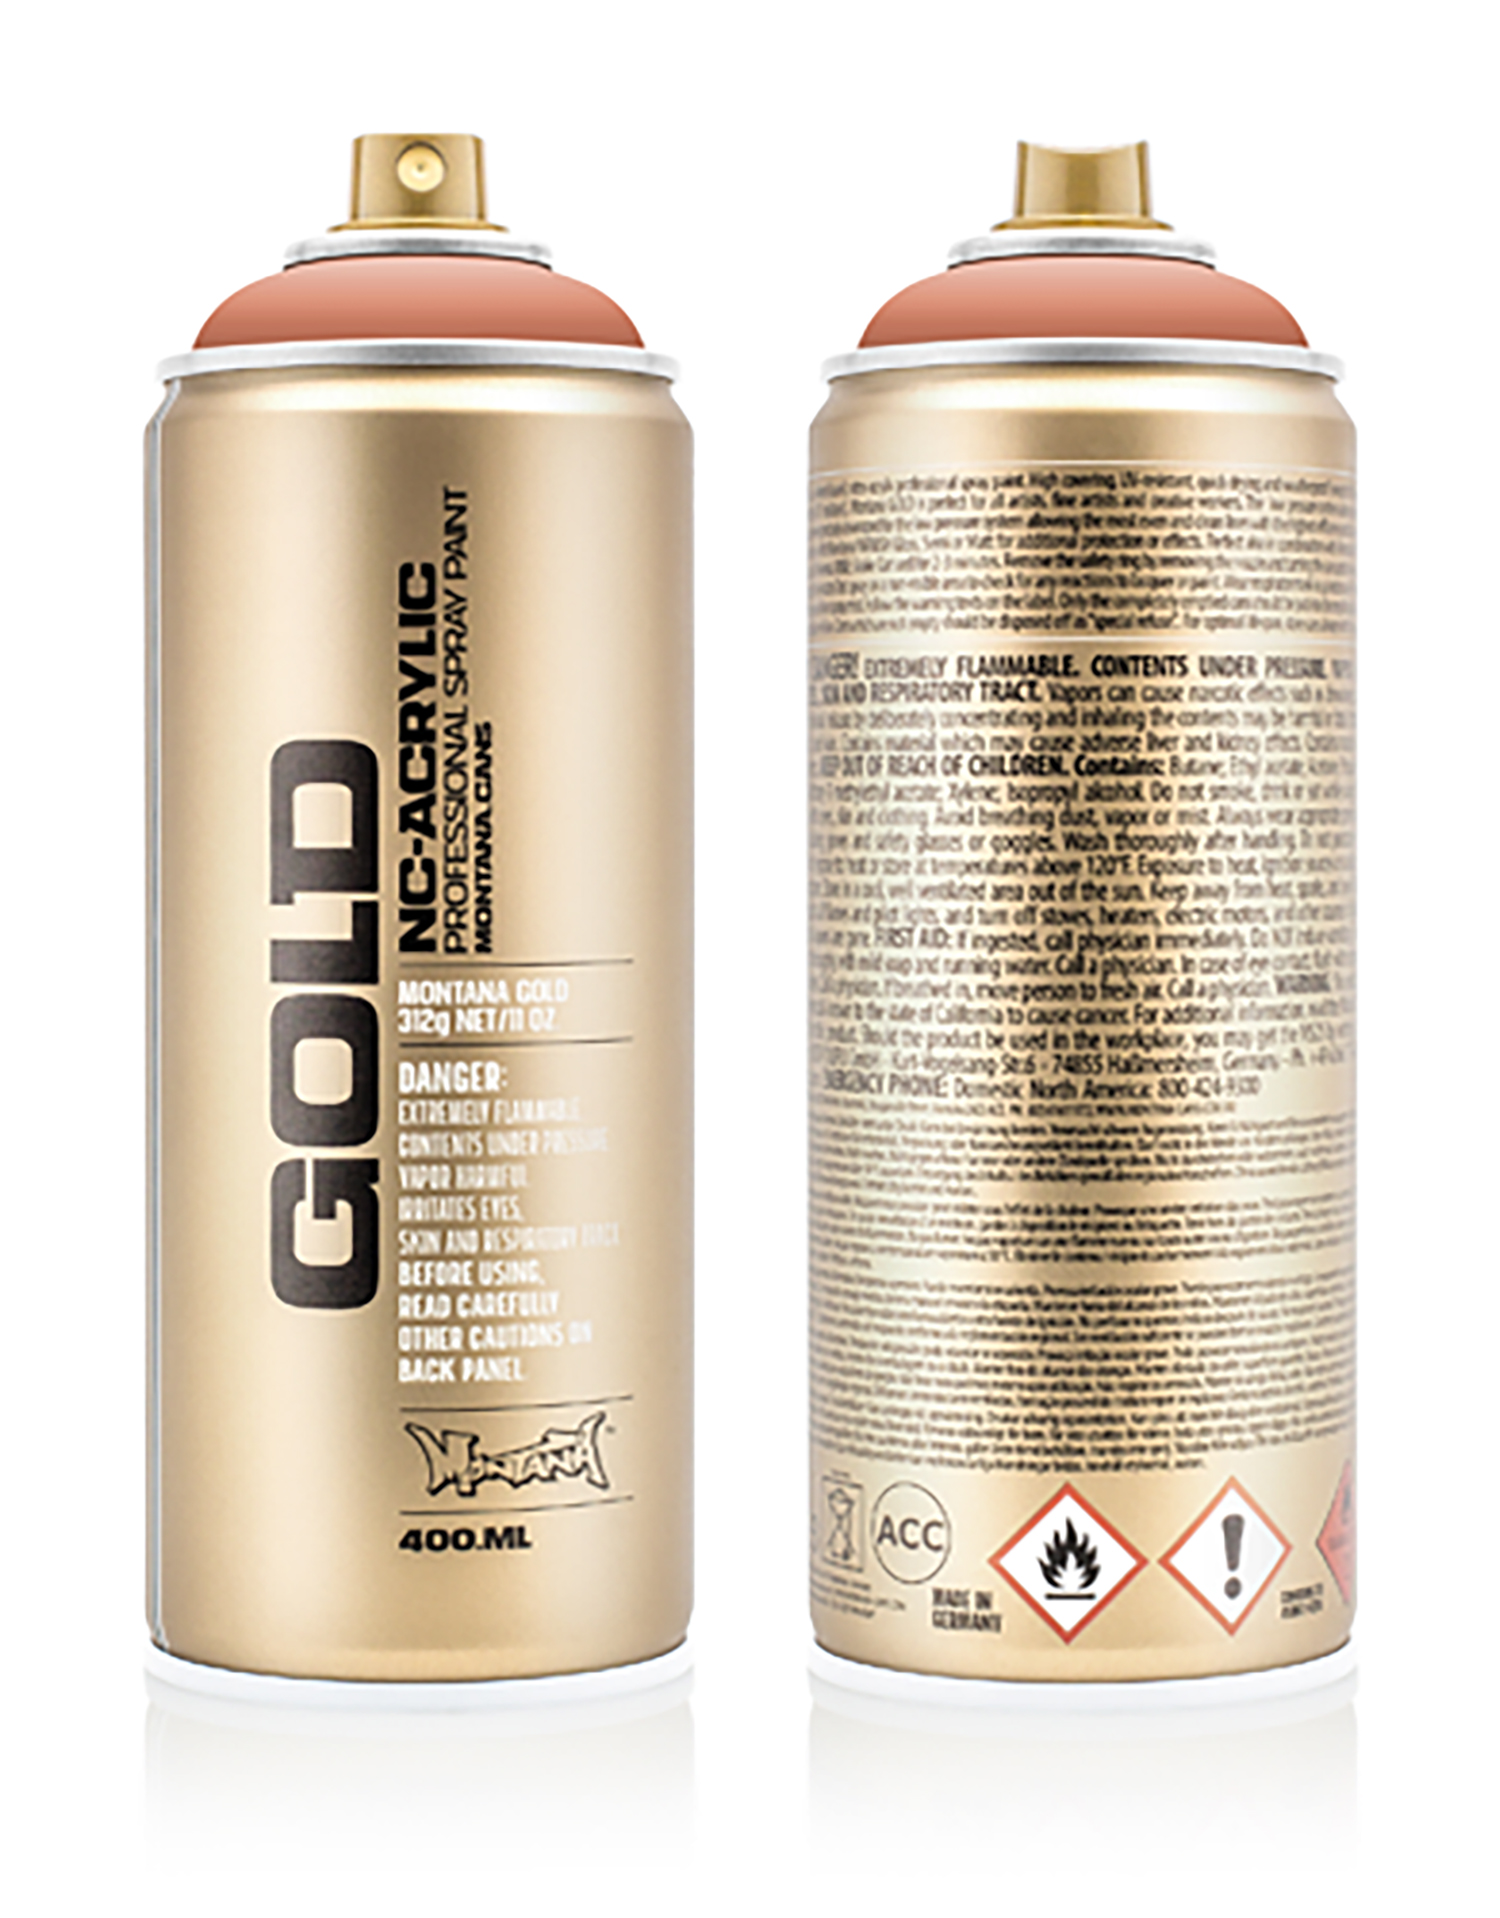 MONTANA-GOLD-SPRAY-400ML-G-8080